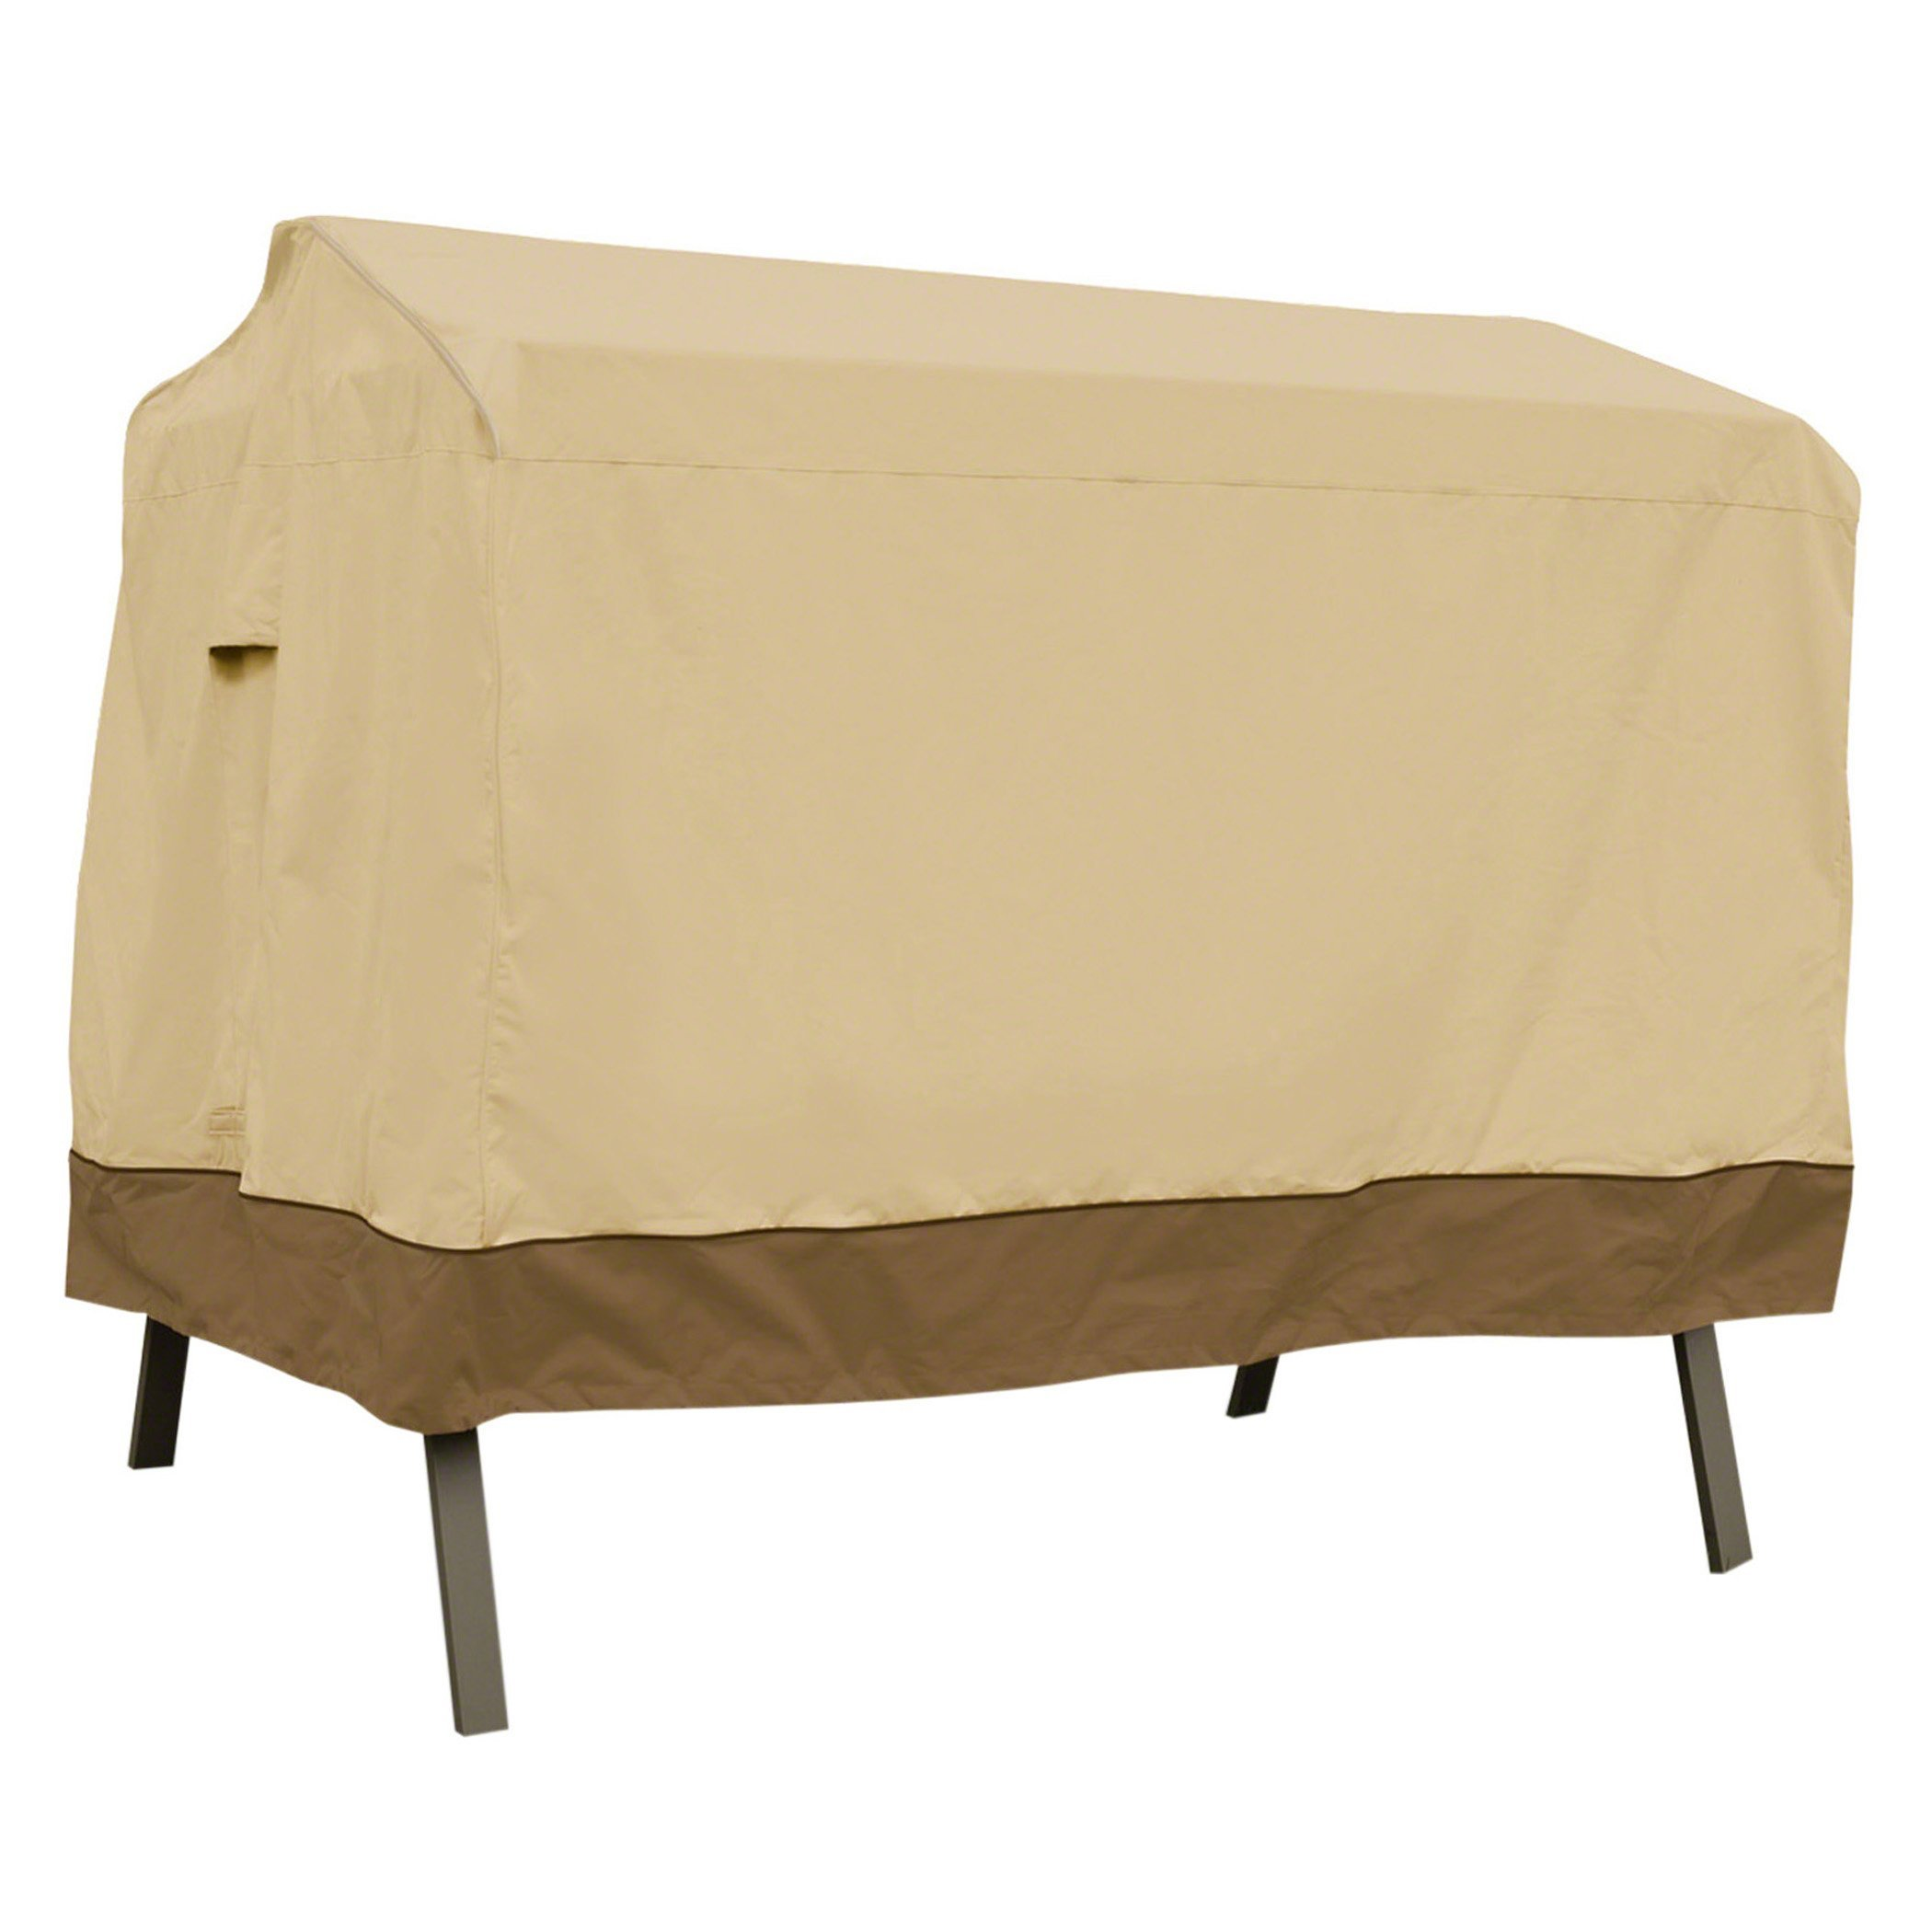 Classic Accessories Veranda 3-Seater Patio Canopy Swing Cover - Durable and Water Resistant Patio Set Cover (55-622-011501-00)